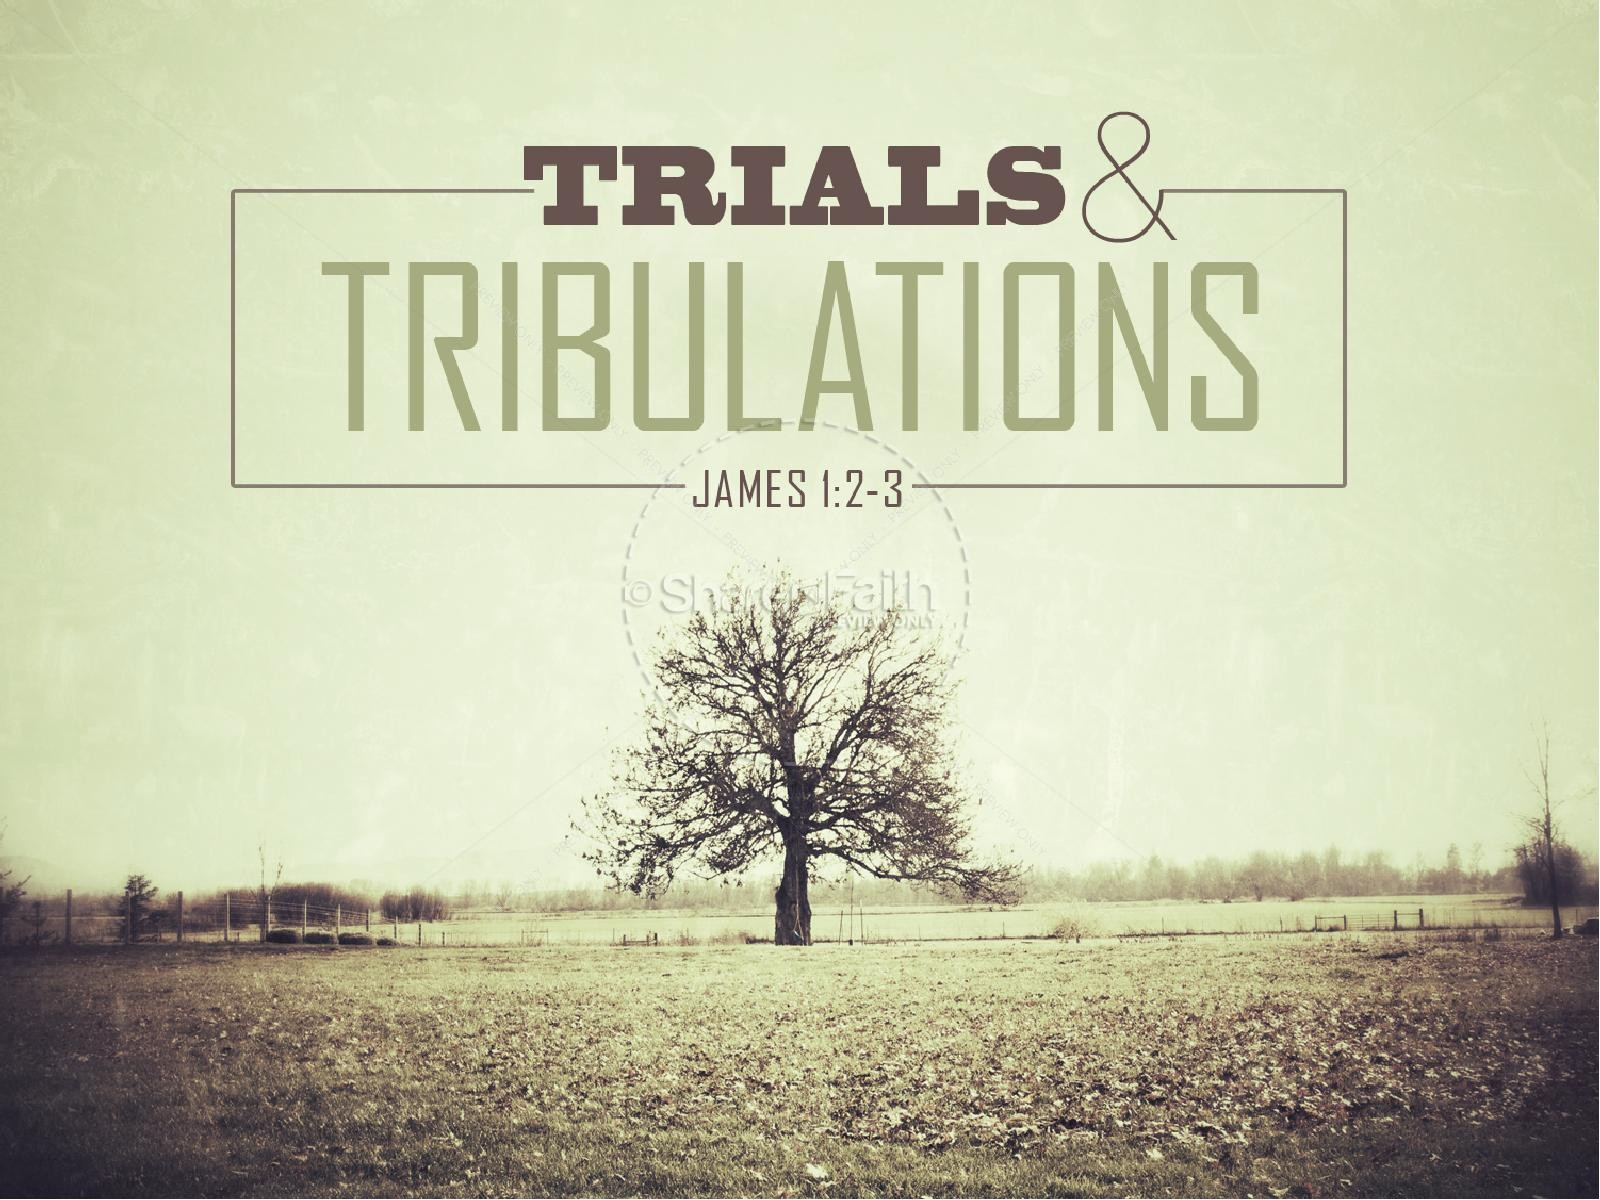 Trials and tribulations powerpoint sermon powerpoint sermons